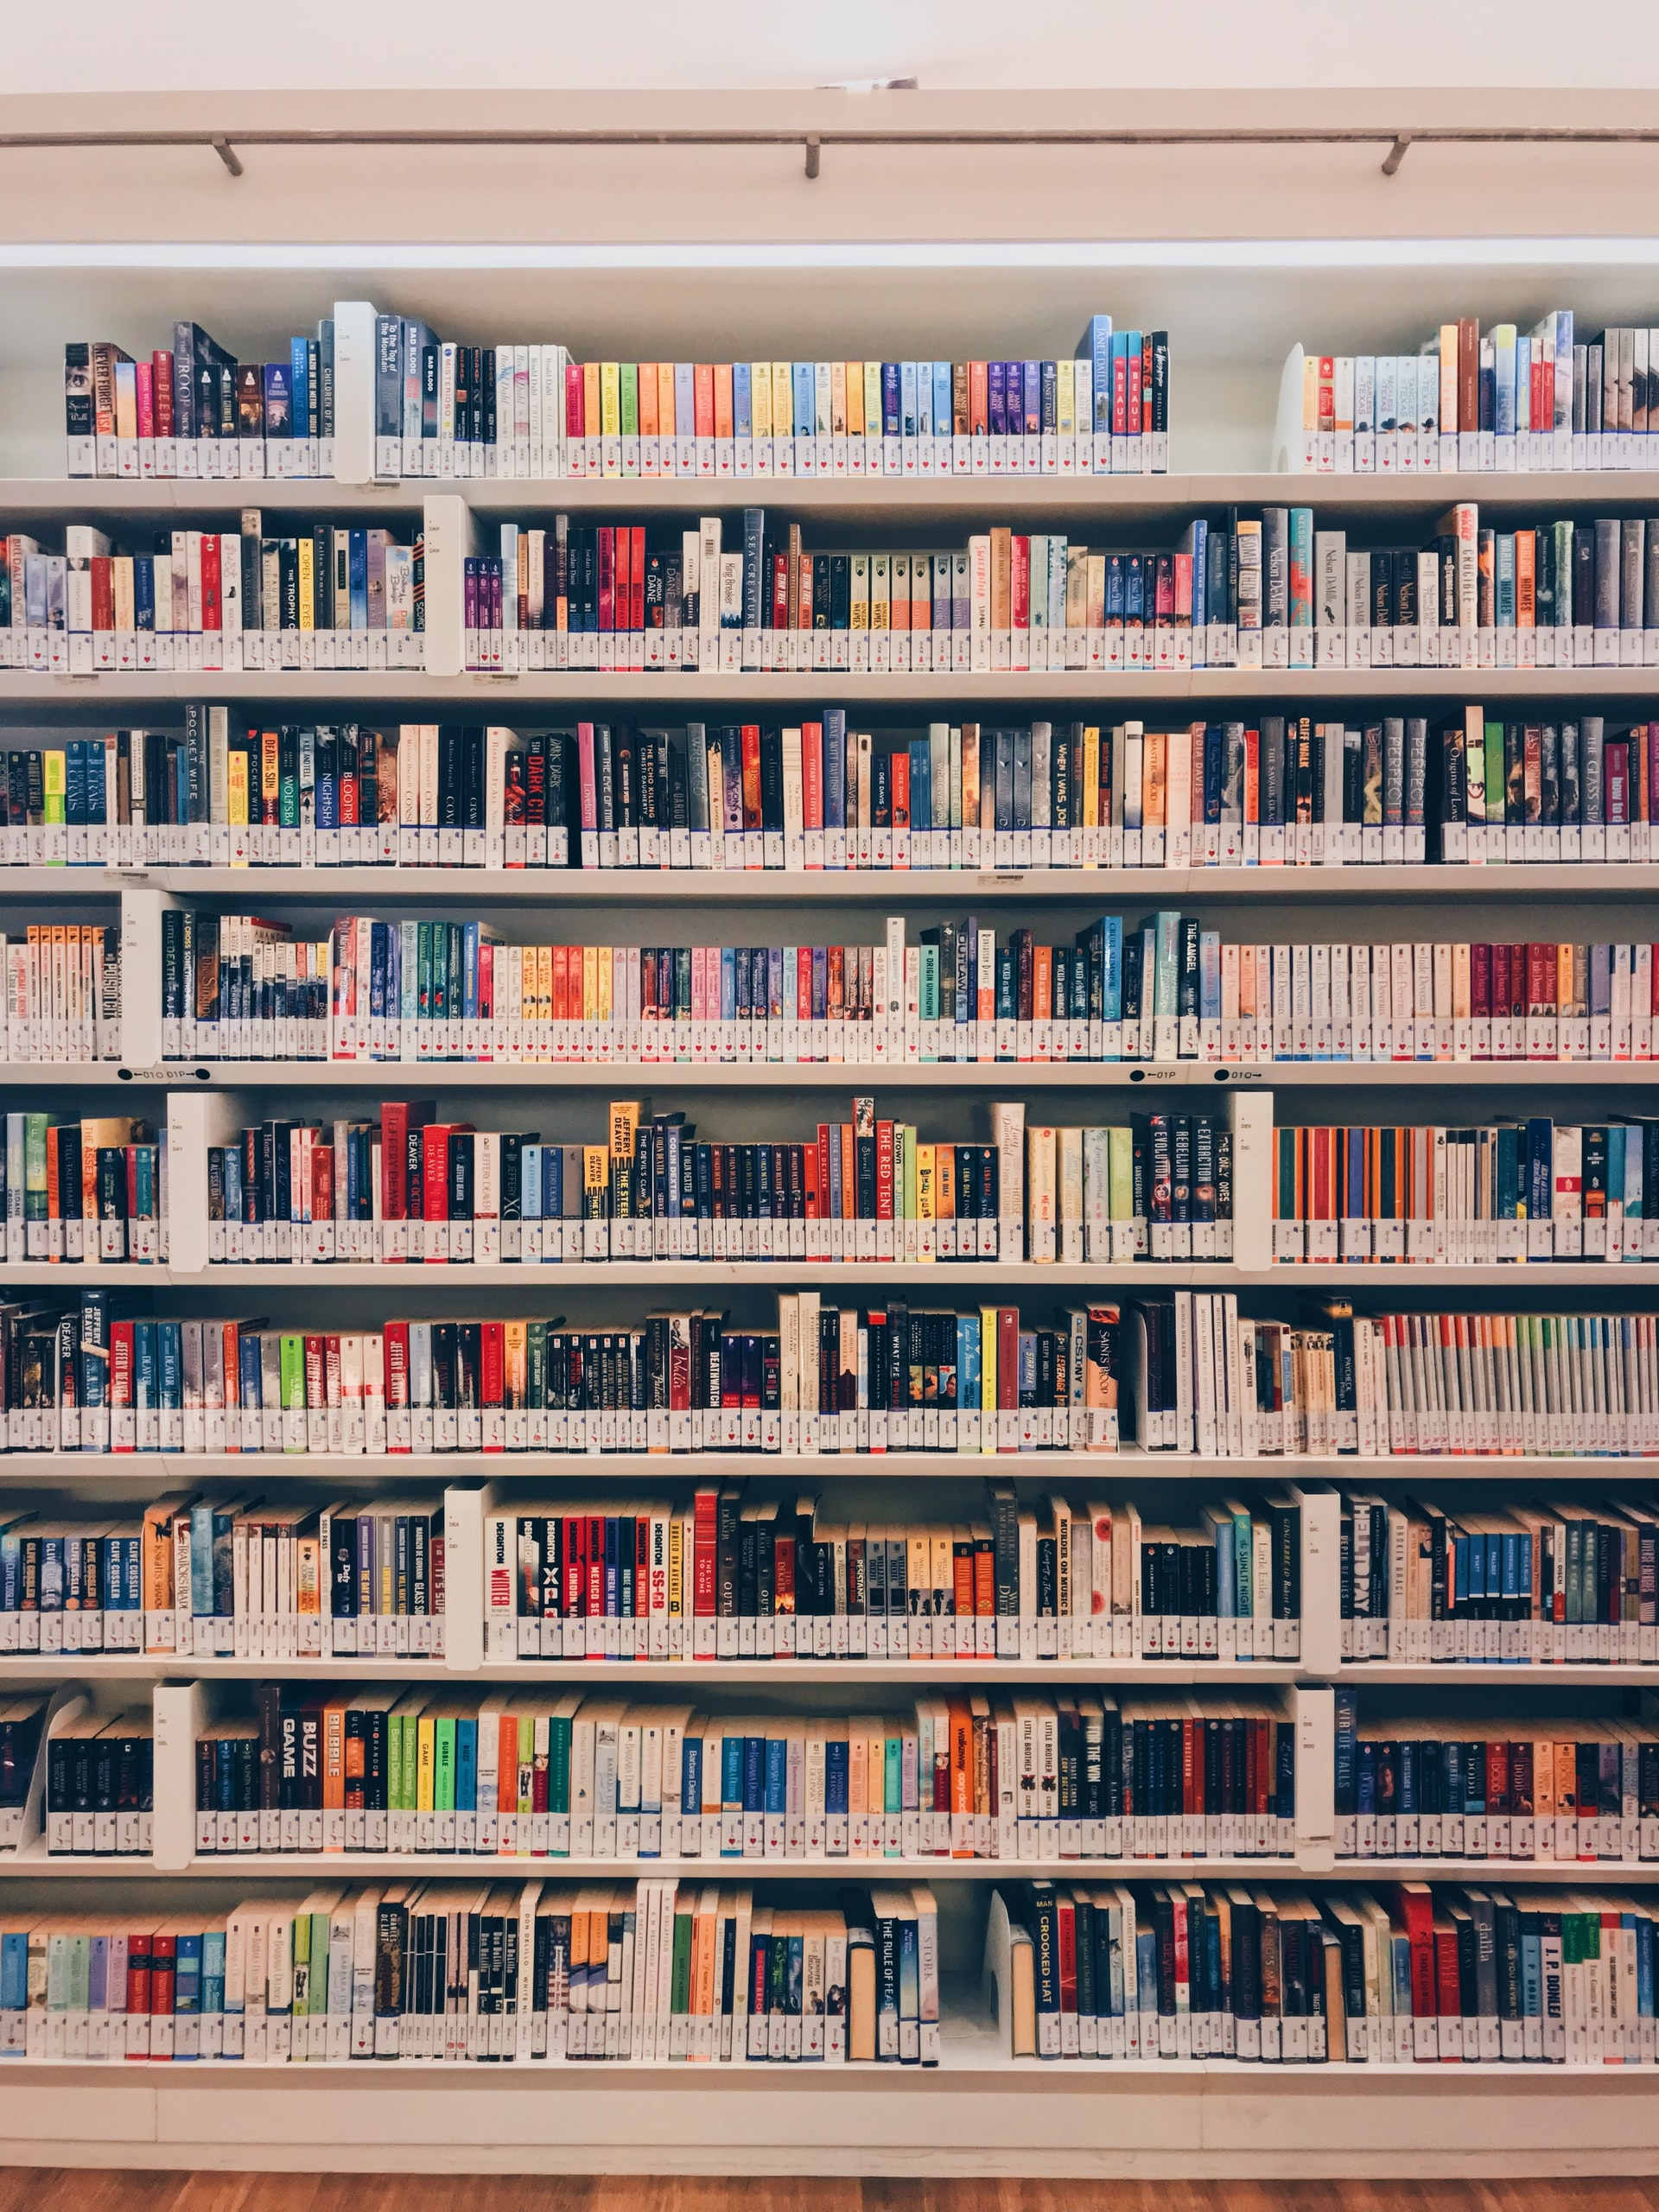 Shelves of multicolored library books. Photo courtesy of Zaini Izzuddin on Unsplash.